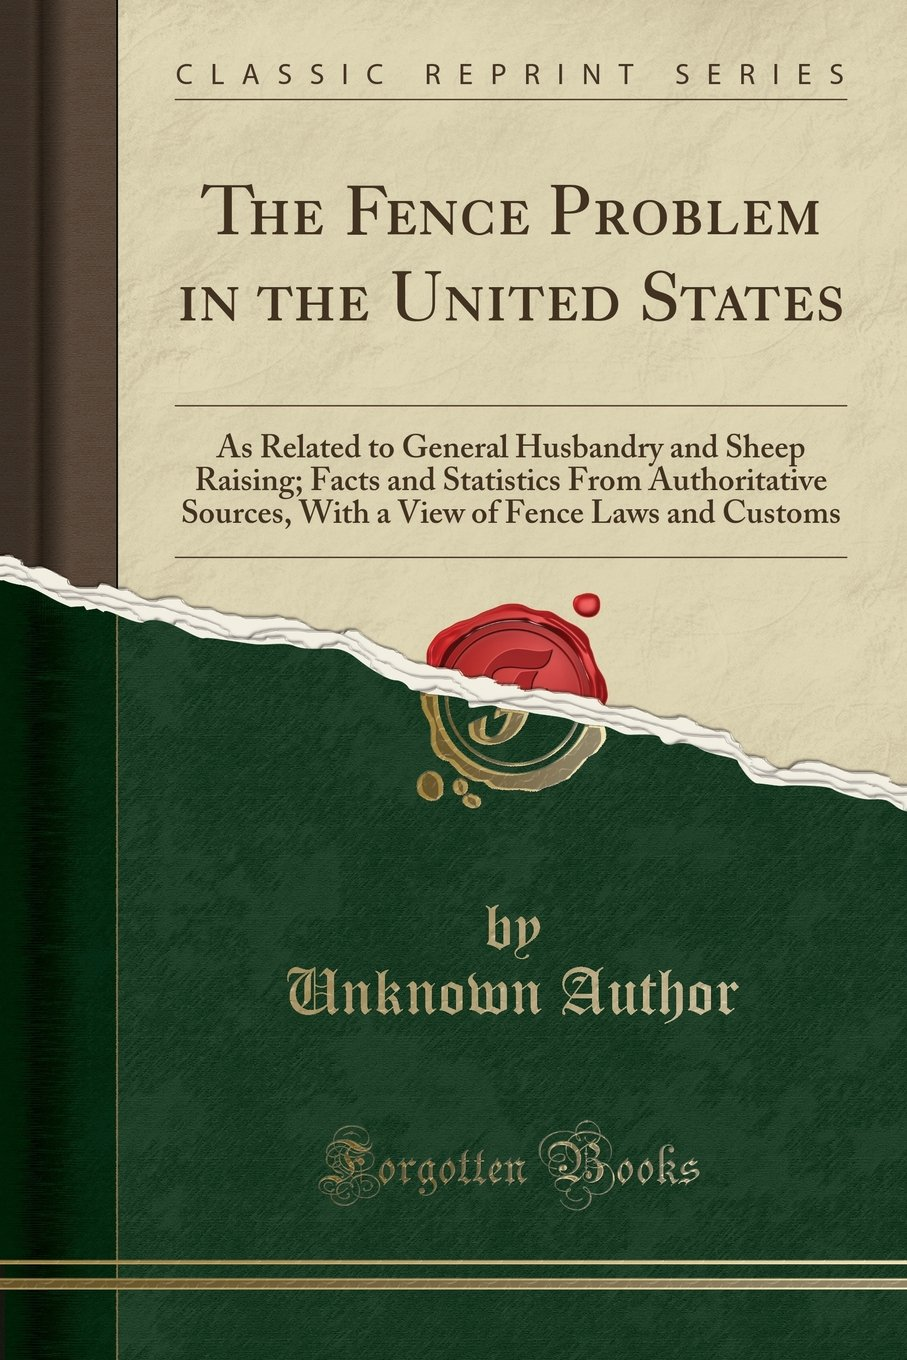 The Fence Problem in the United States: As Related to General Husbandry and Sheep Raising; Facts and Statistics From Authoritative Sources, With a View of Fence Laws and Customs (Classic Reprint) PDF